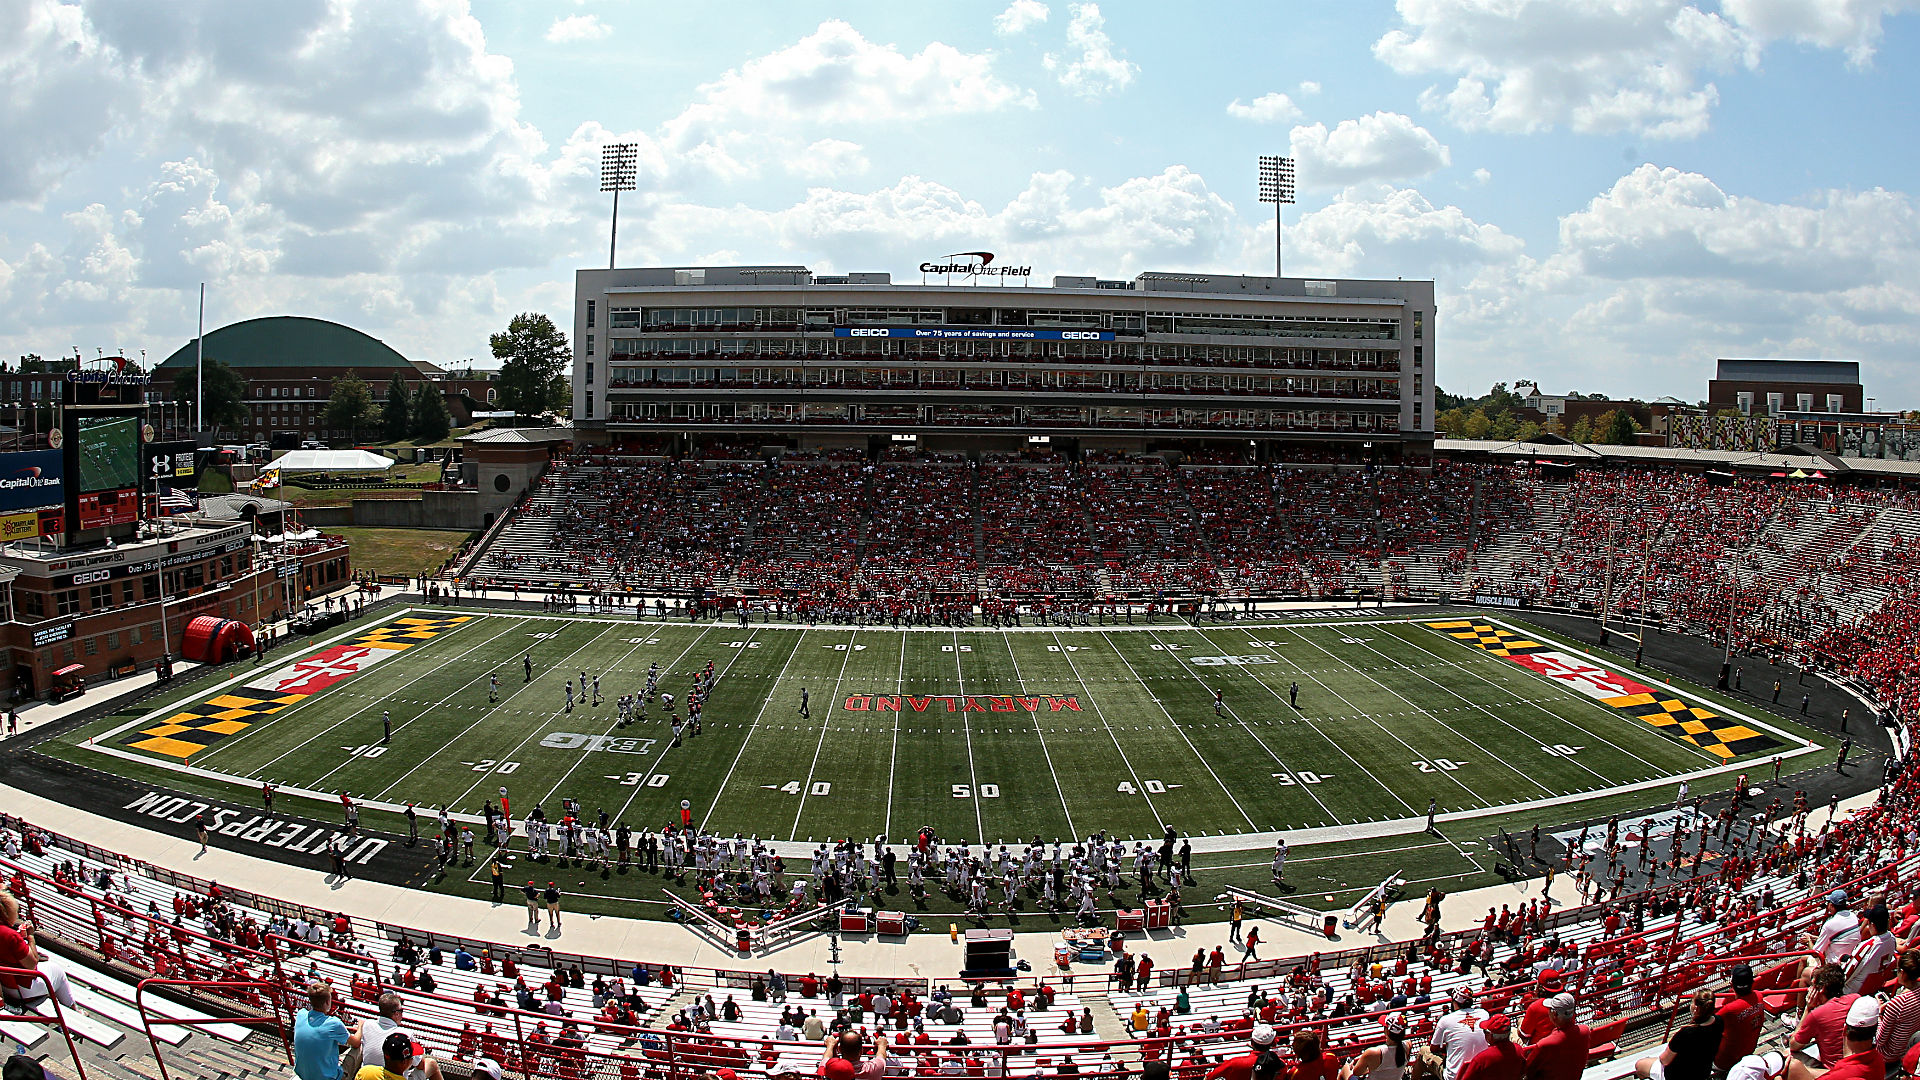 University of Maryland suspends athletic staff after allegations of 'toxic' environment